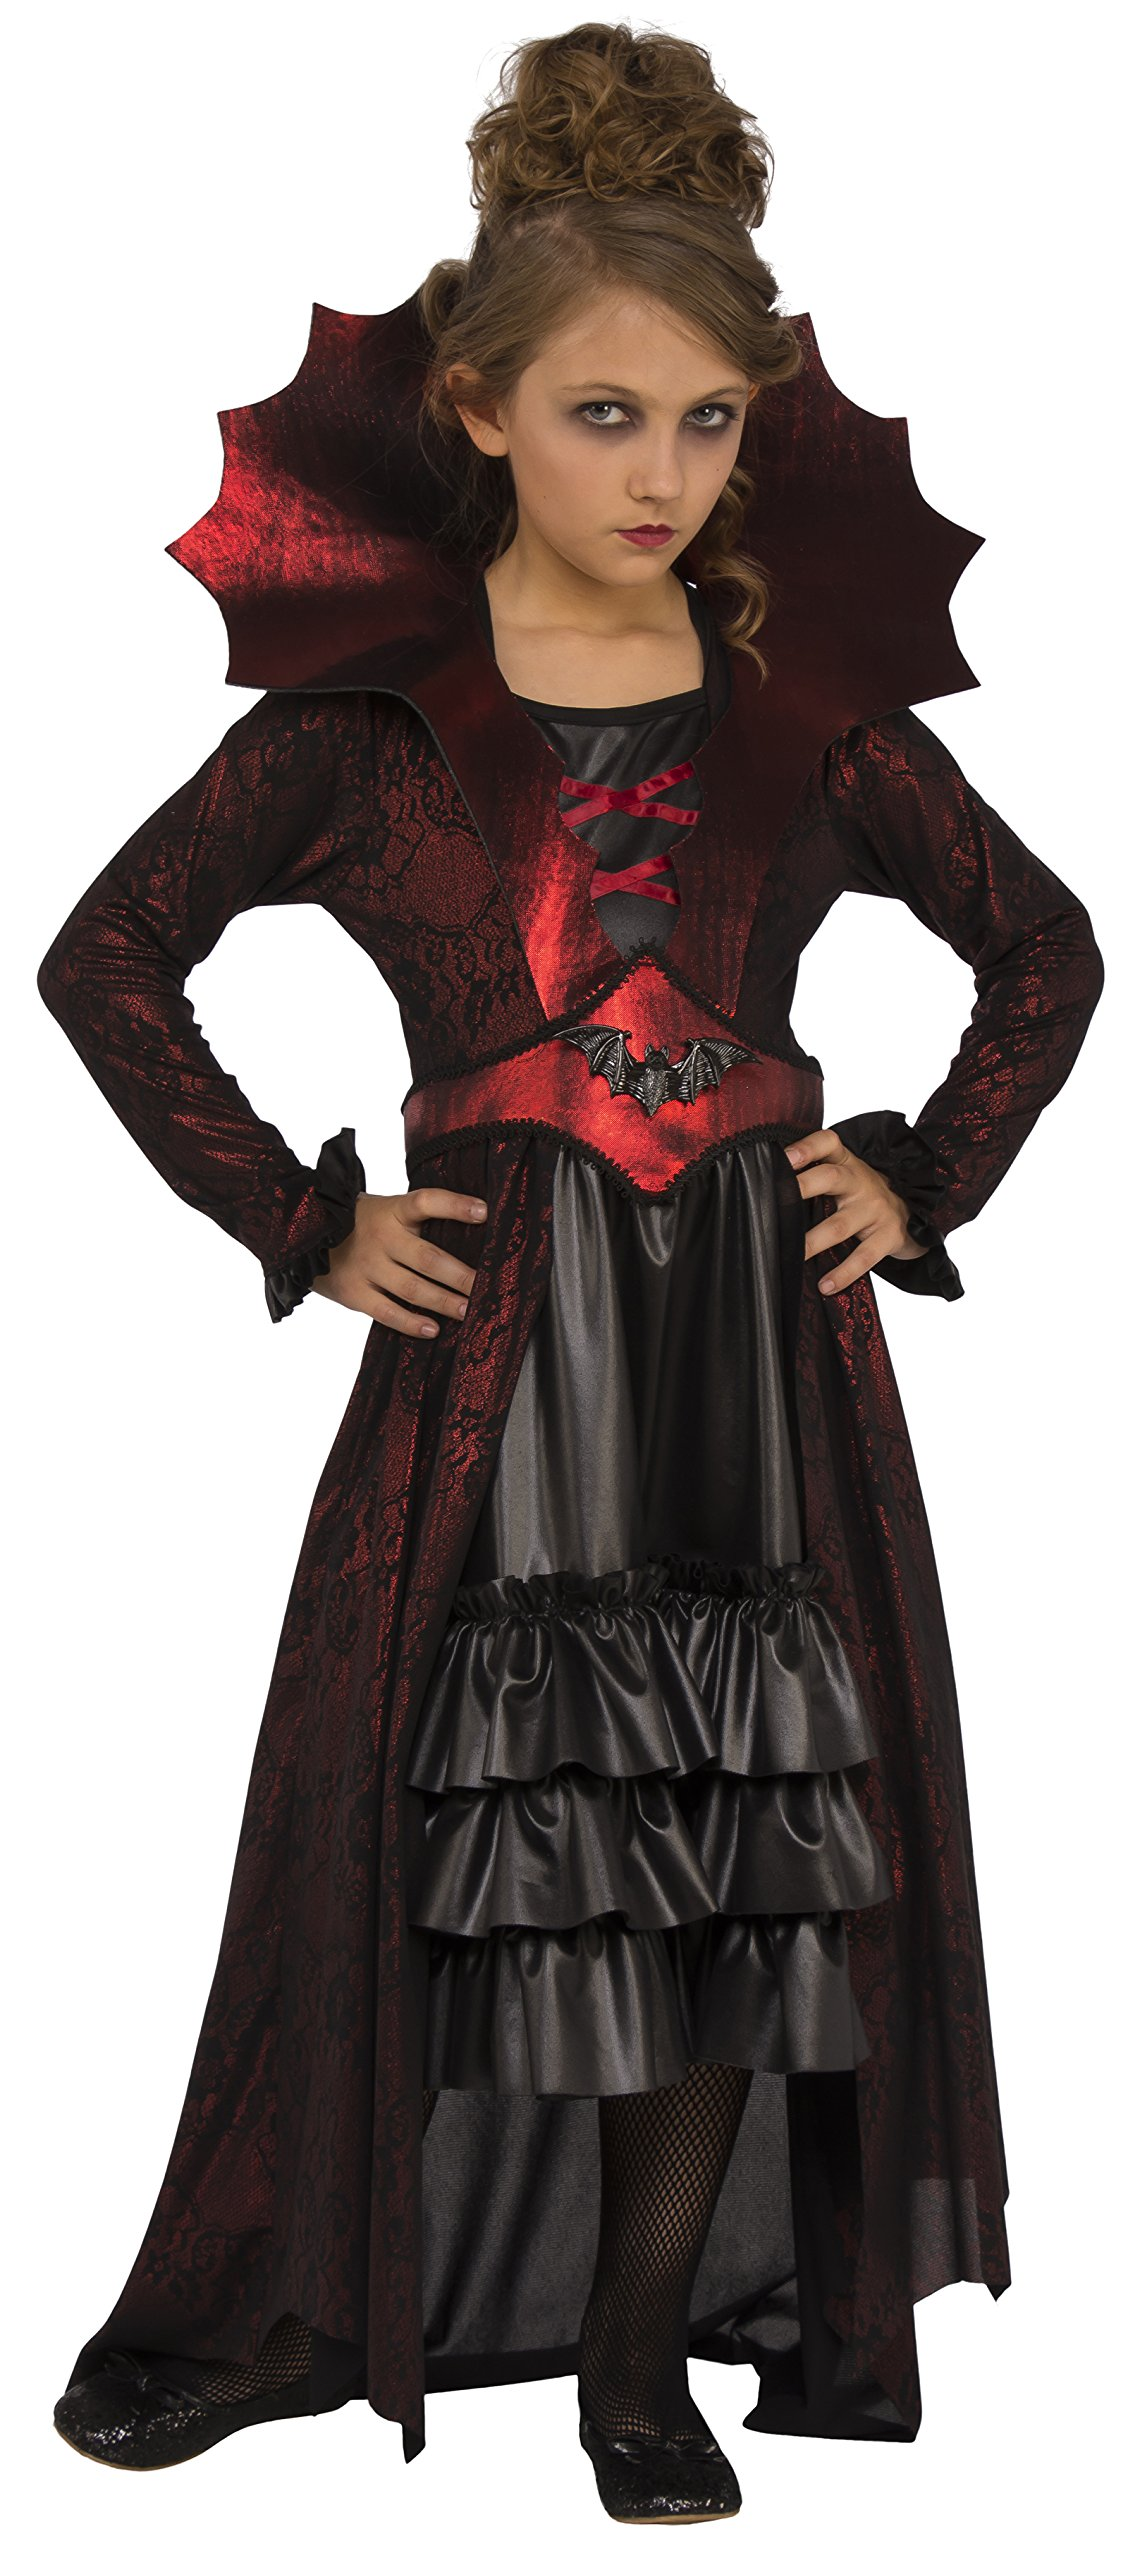 Rubies Costume Child's Victorian Vampire Costume, Large, Multicolor by Rubies Costume